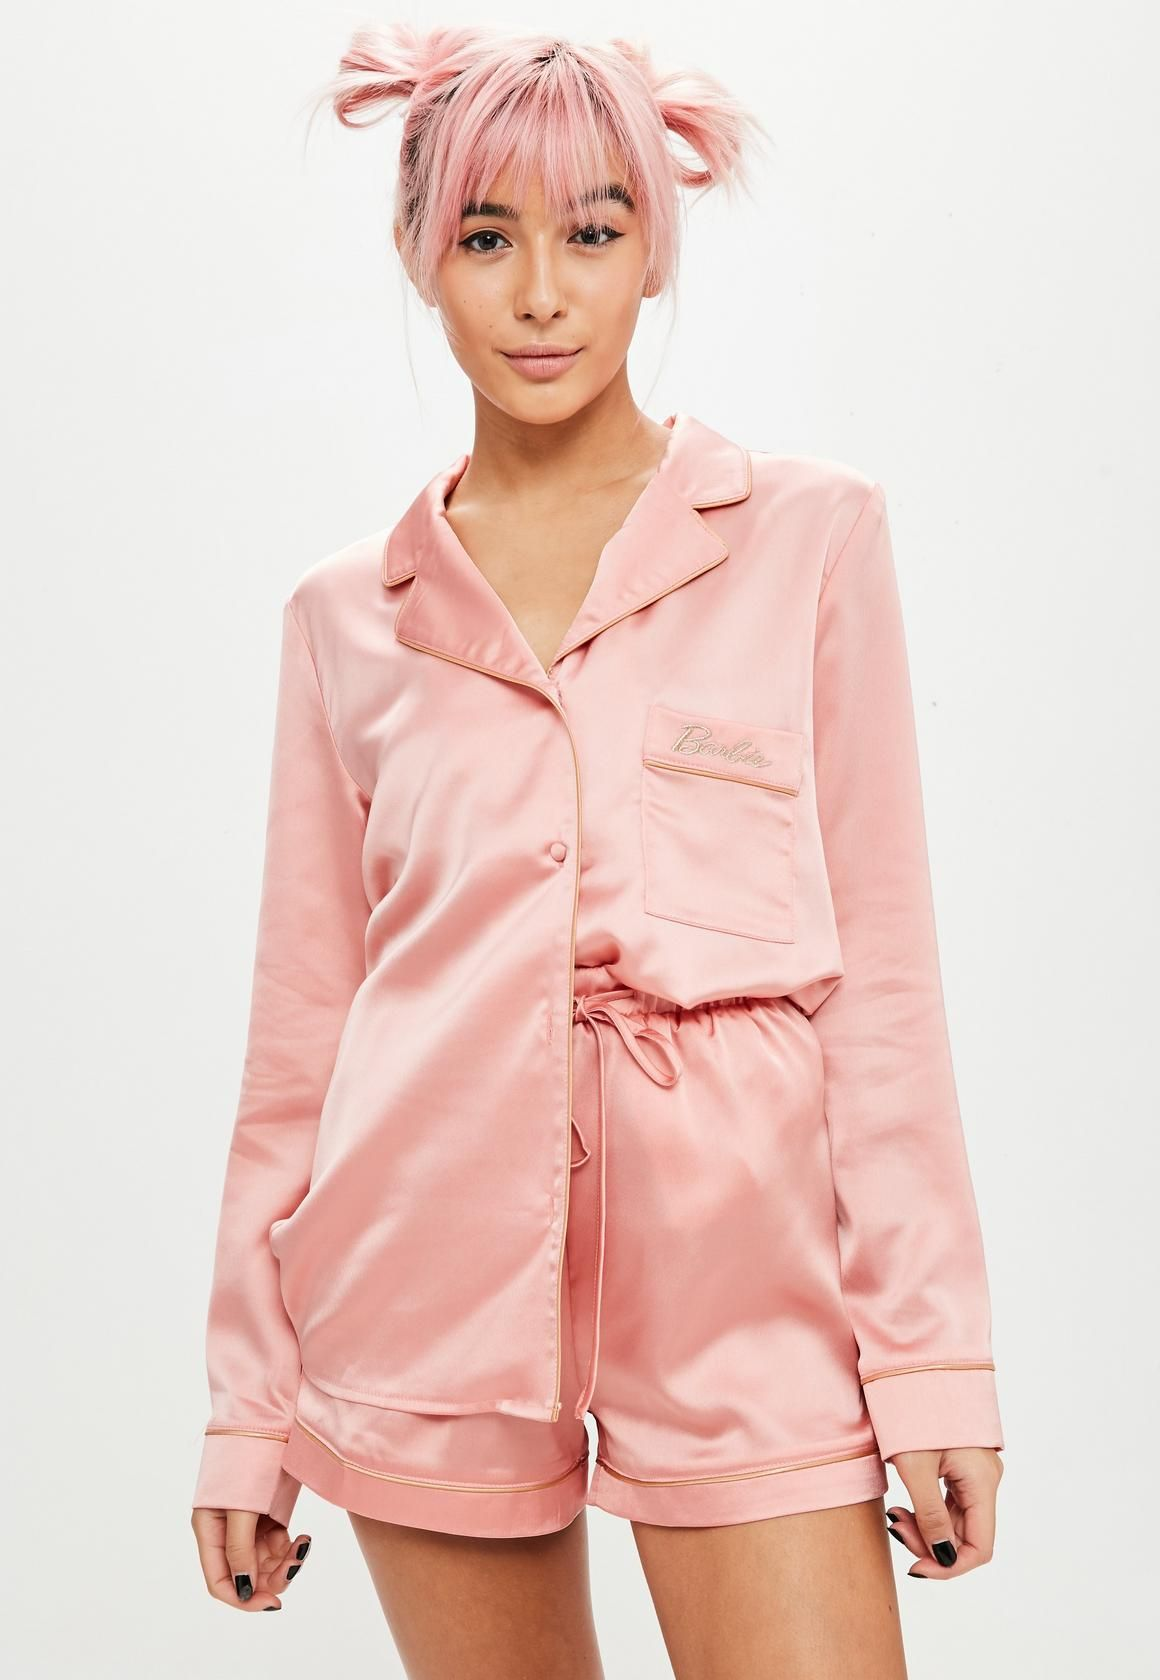 e157237853 Barbie x Missguided Pink Long Sleeve Satin Pajamas Set in 2019 ...